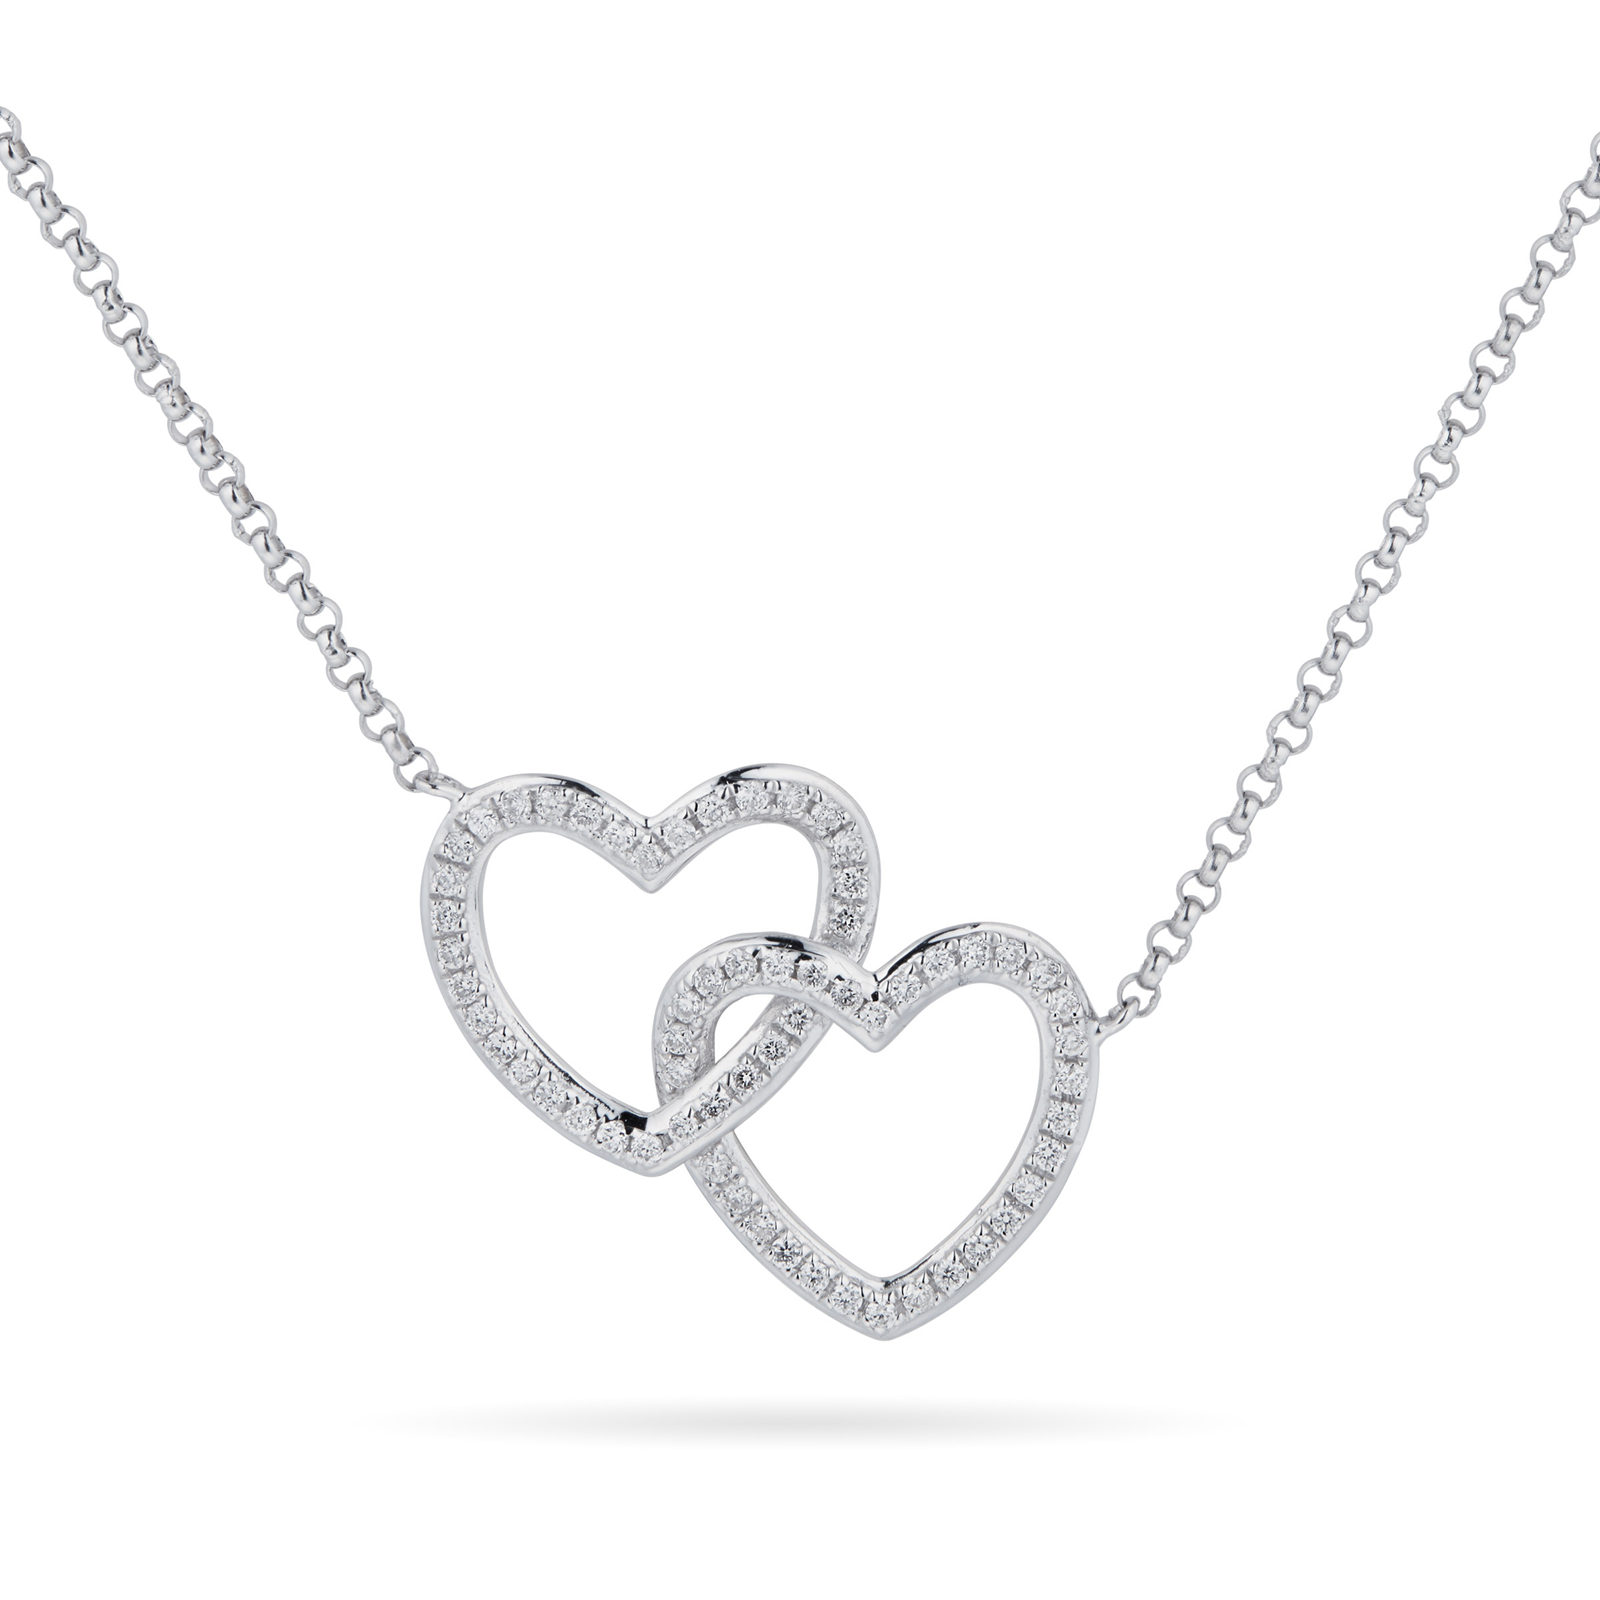 9ct White Gold 0.14 Carat Total Weight Diamond Interlocking hearts pendant